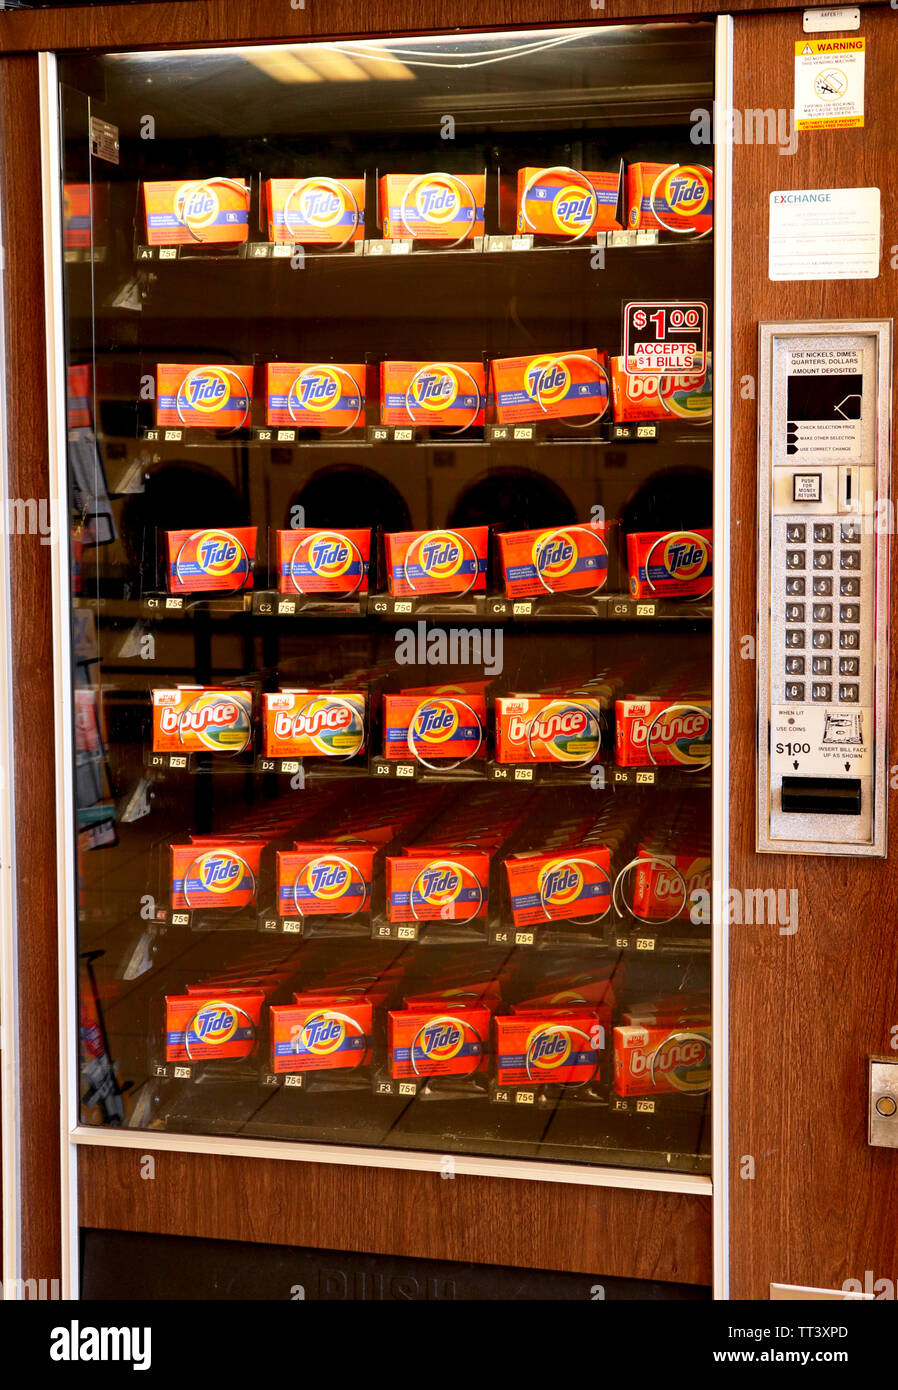 A vending machine in a laundromat selling fabric softener and dryer sheets. Stock Photo